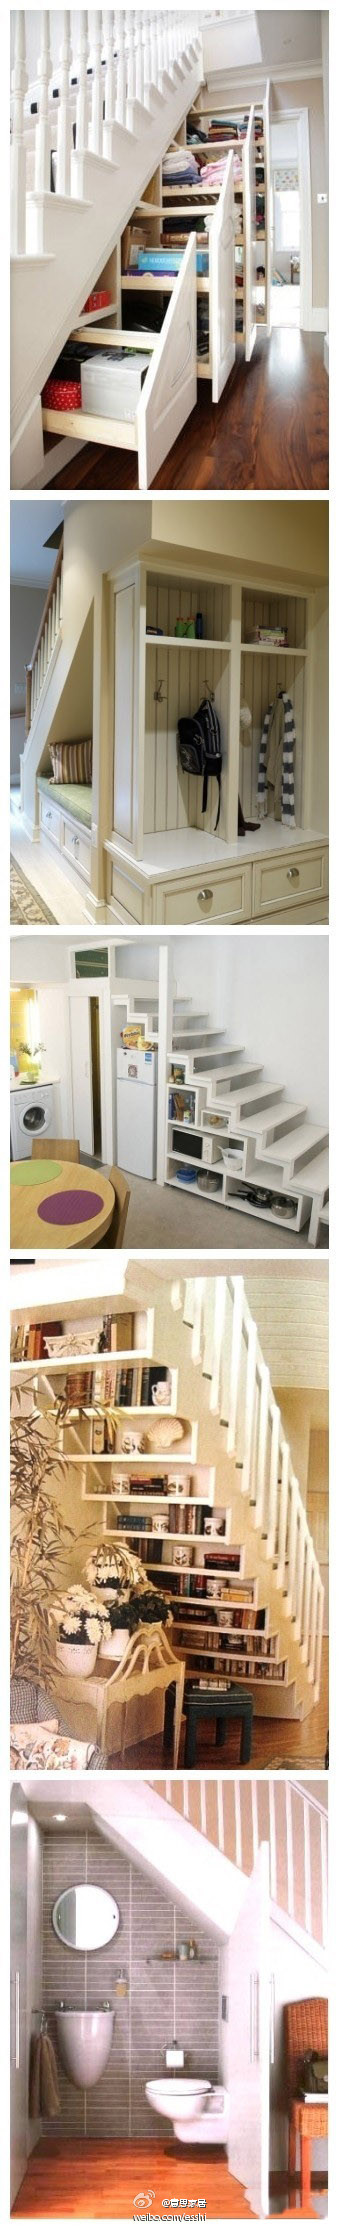 Great ways to make use of that wasted under-the-stairs space.